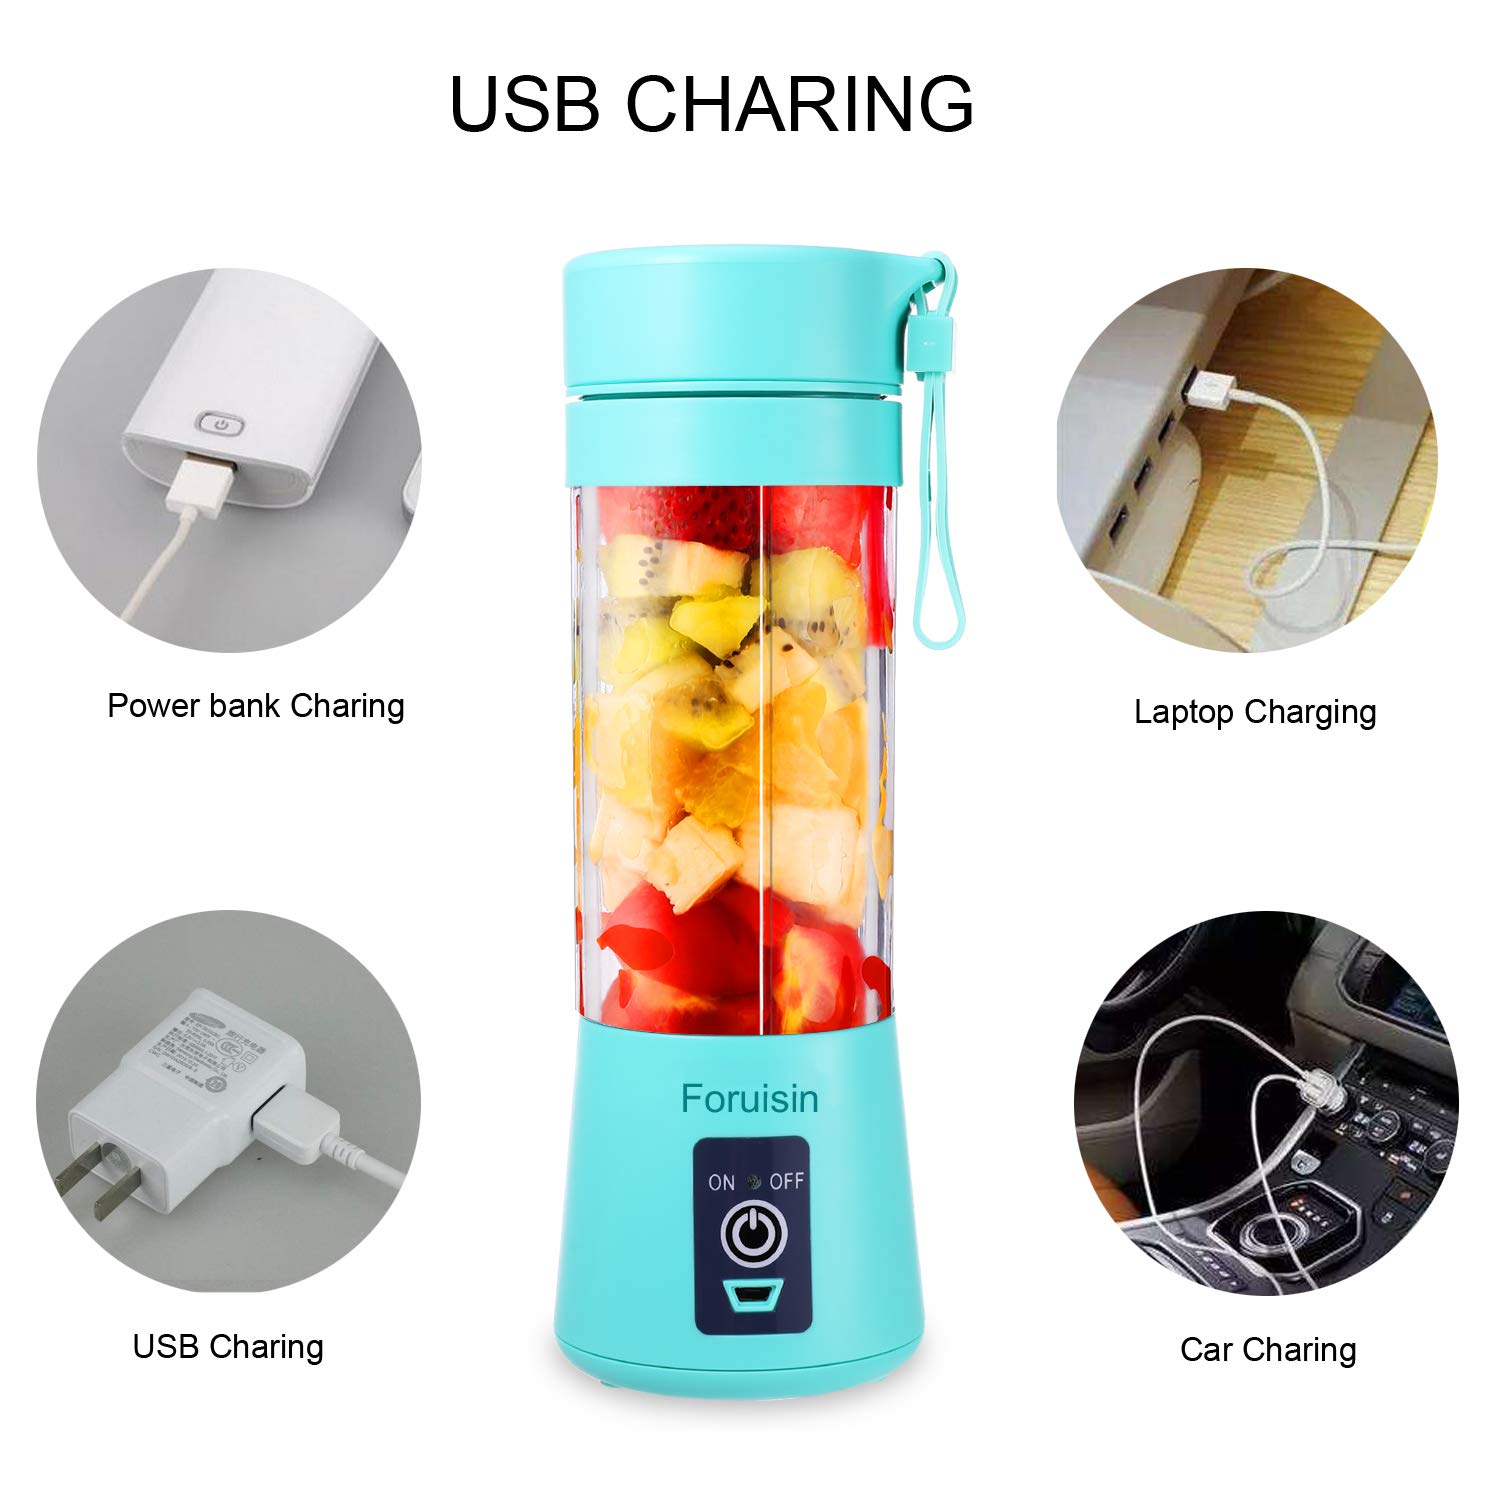 Foruisin Portable Personal Blender, Household Juicer fruit shake Mixer -Six Blades, 380ml Baby cooking machine with USB Charger Cable (Cyan) by Foruisin (Image #5)